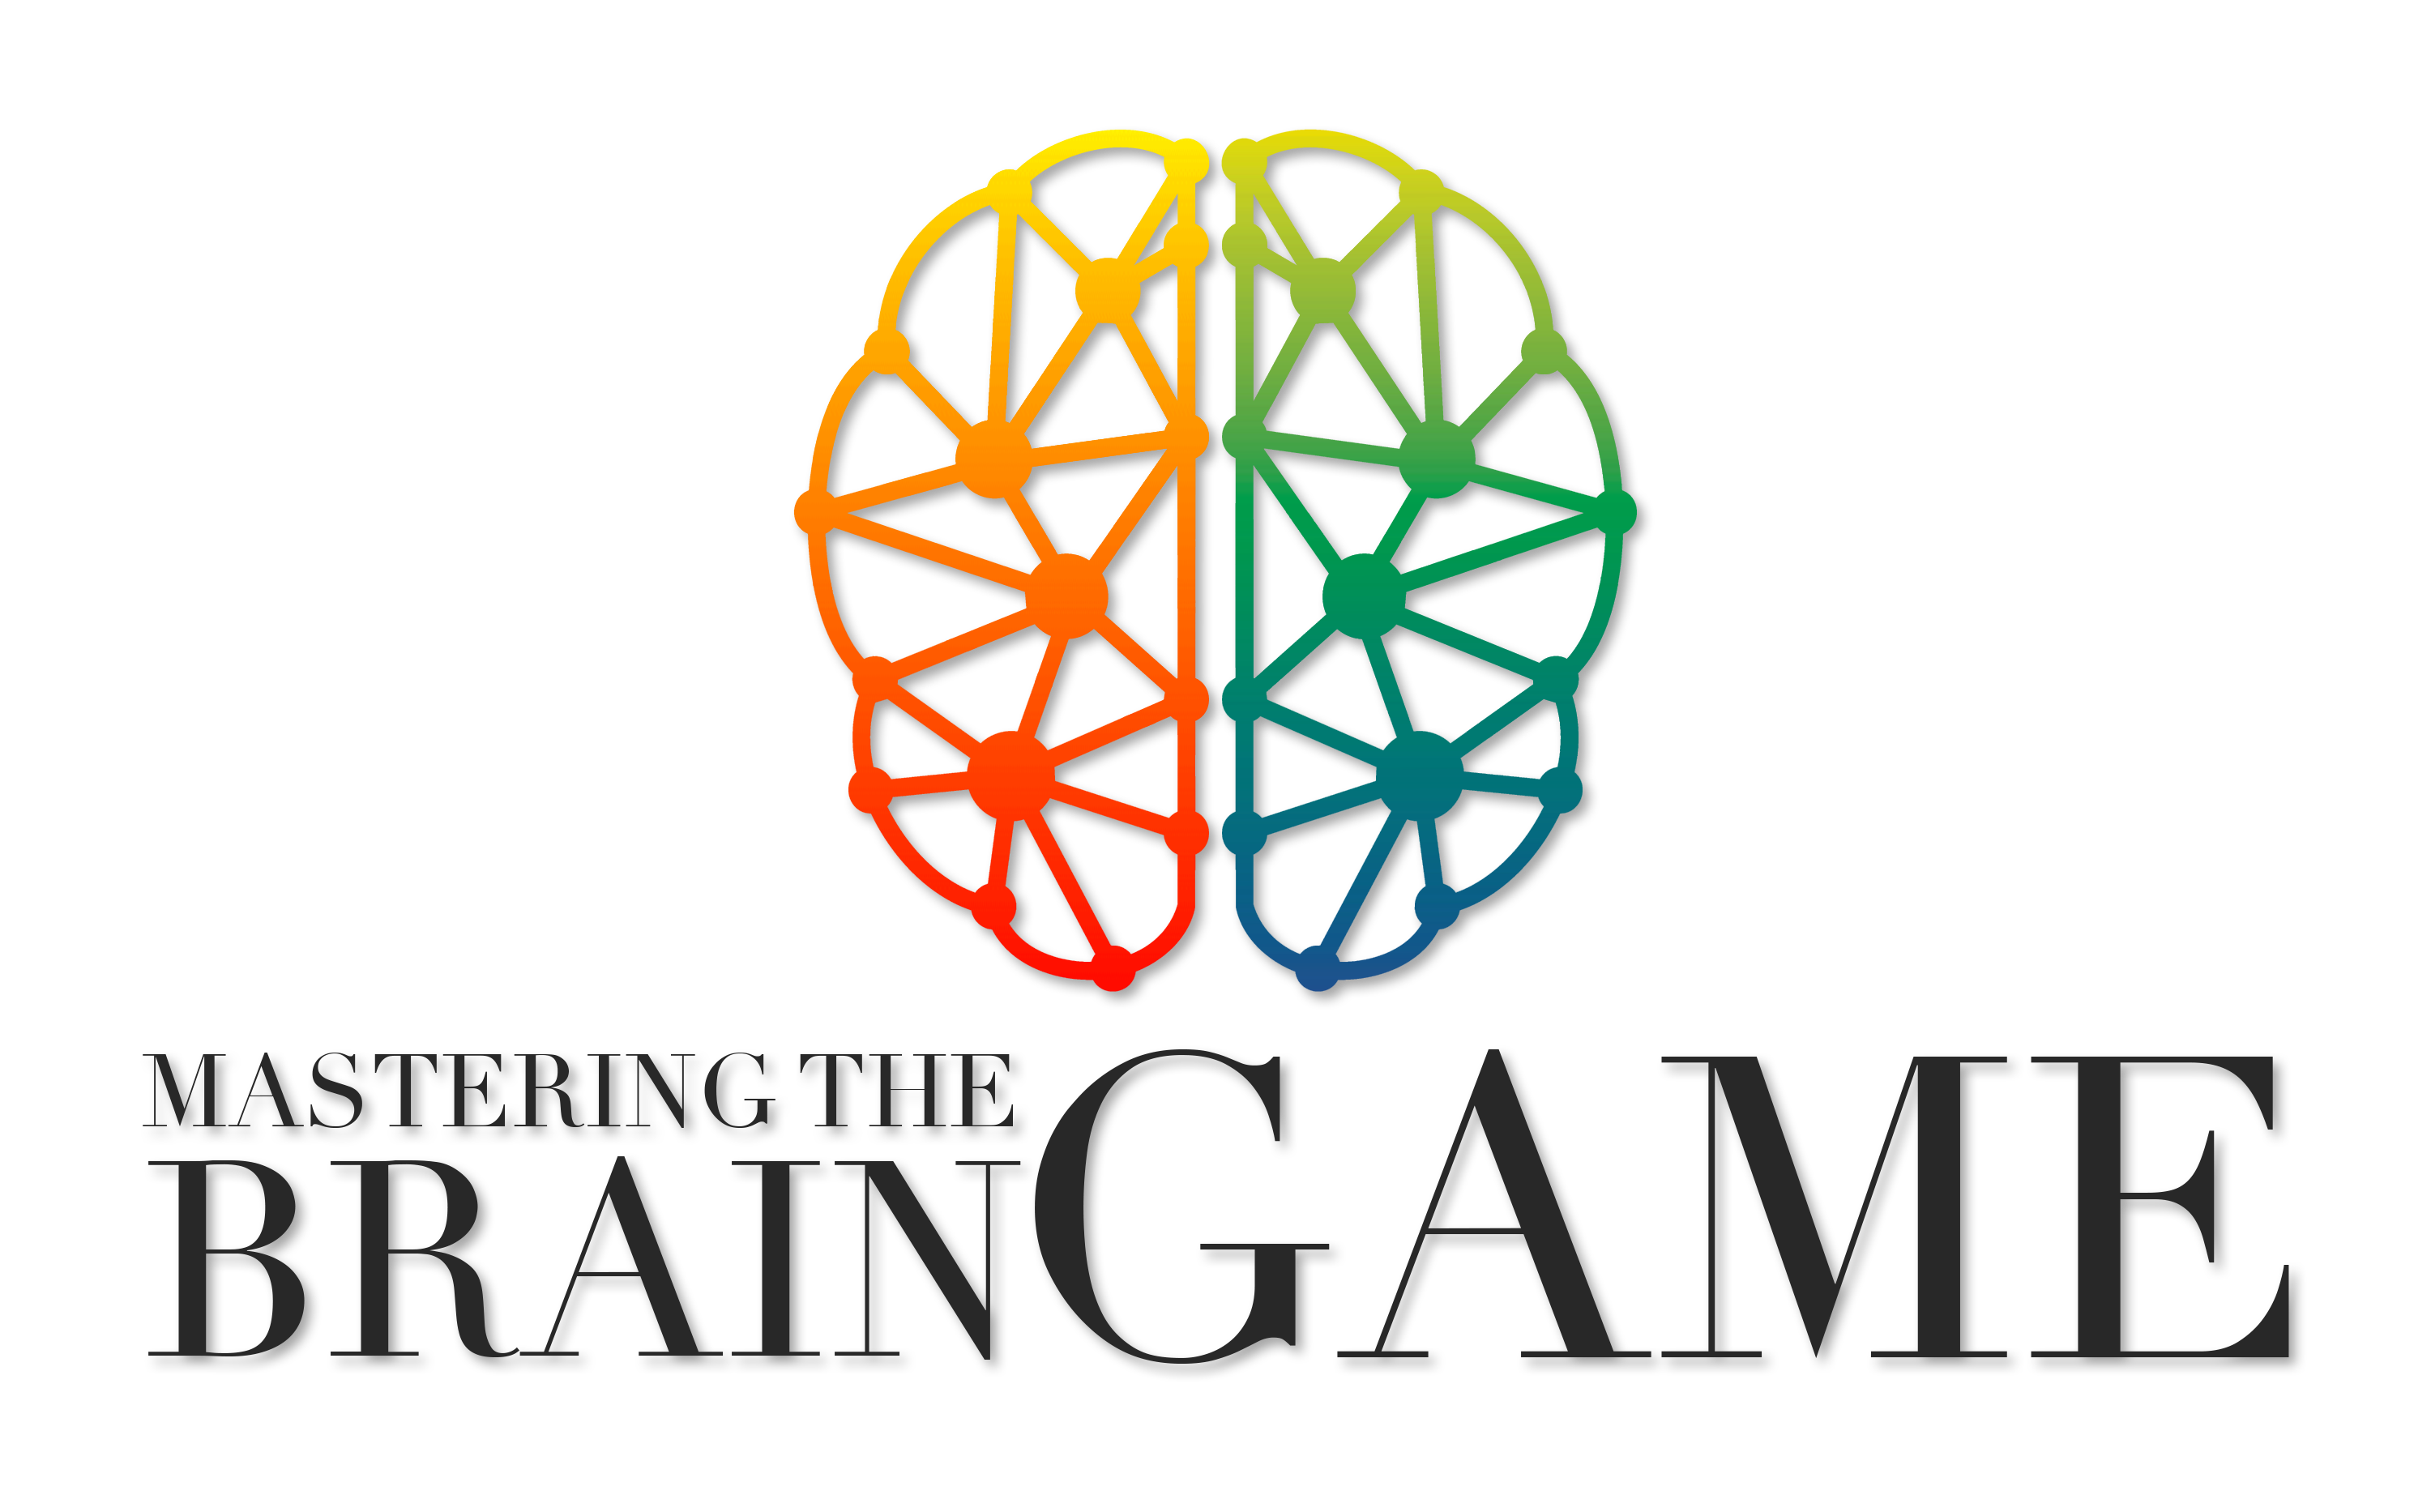 Mastering the BrainGAME